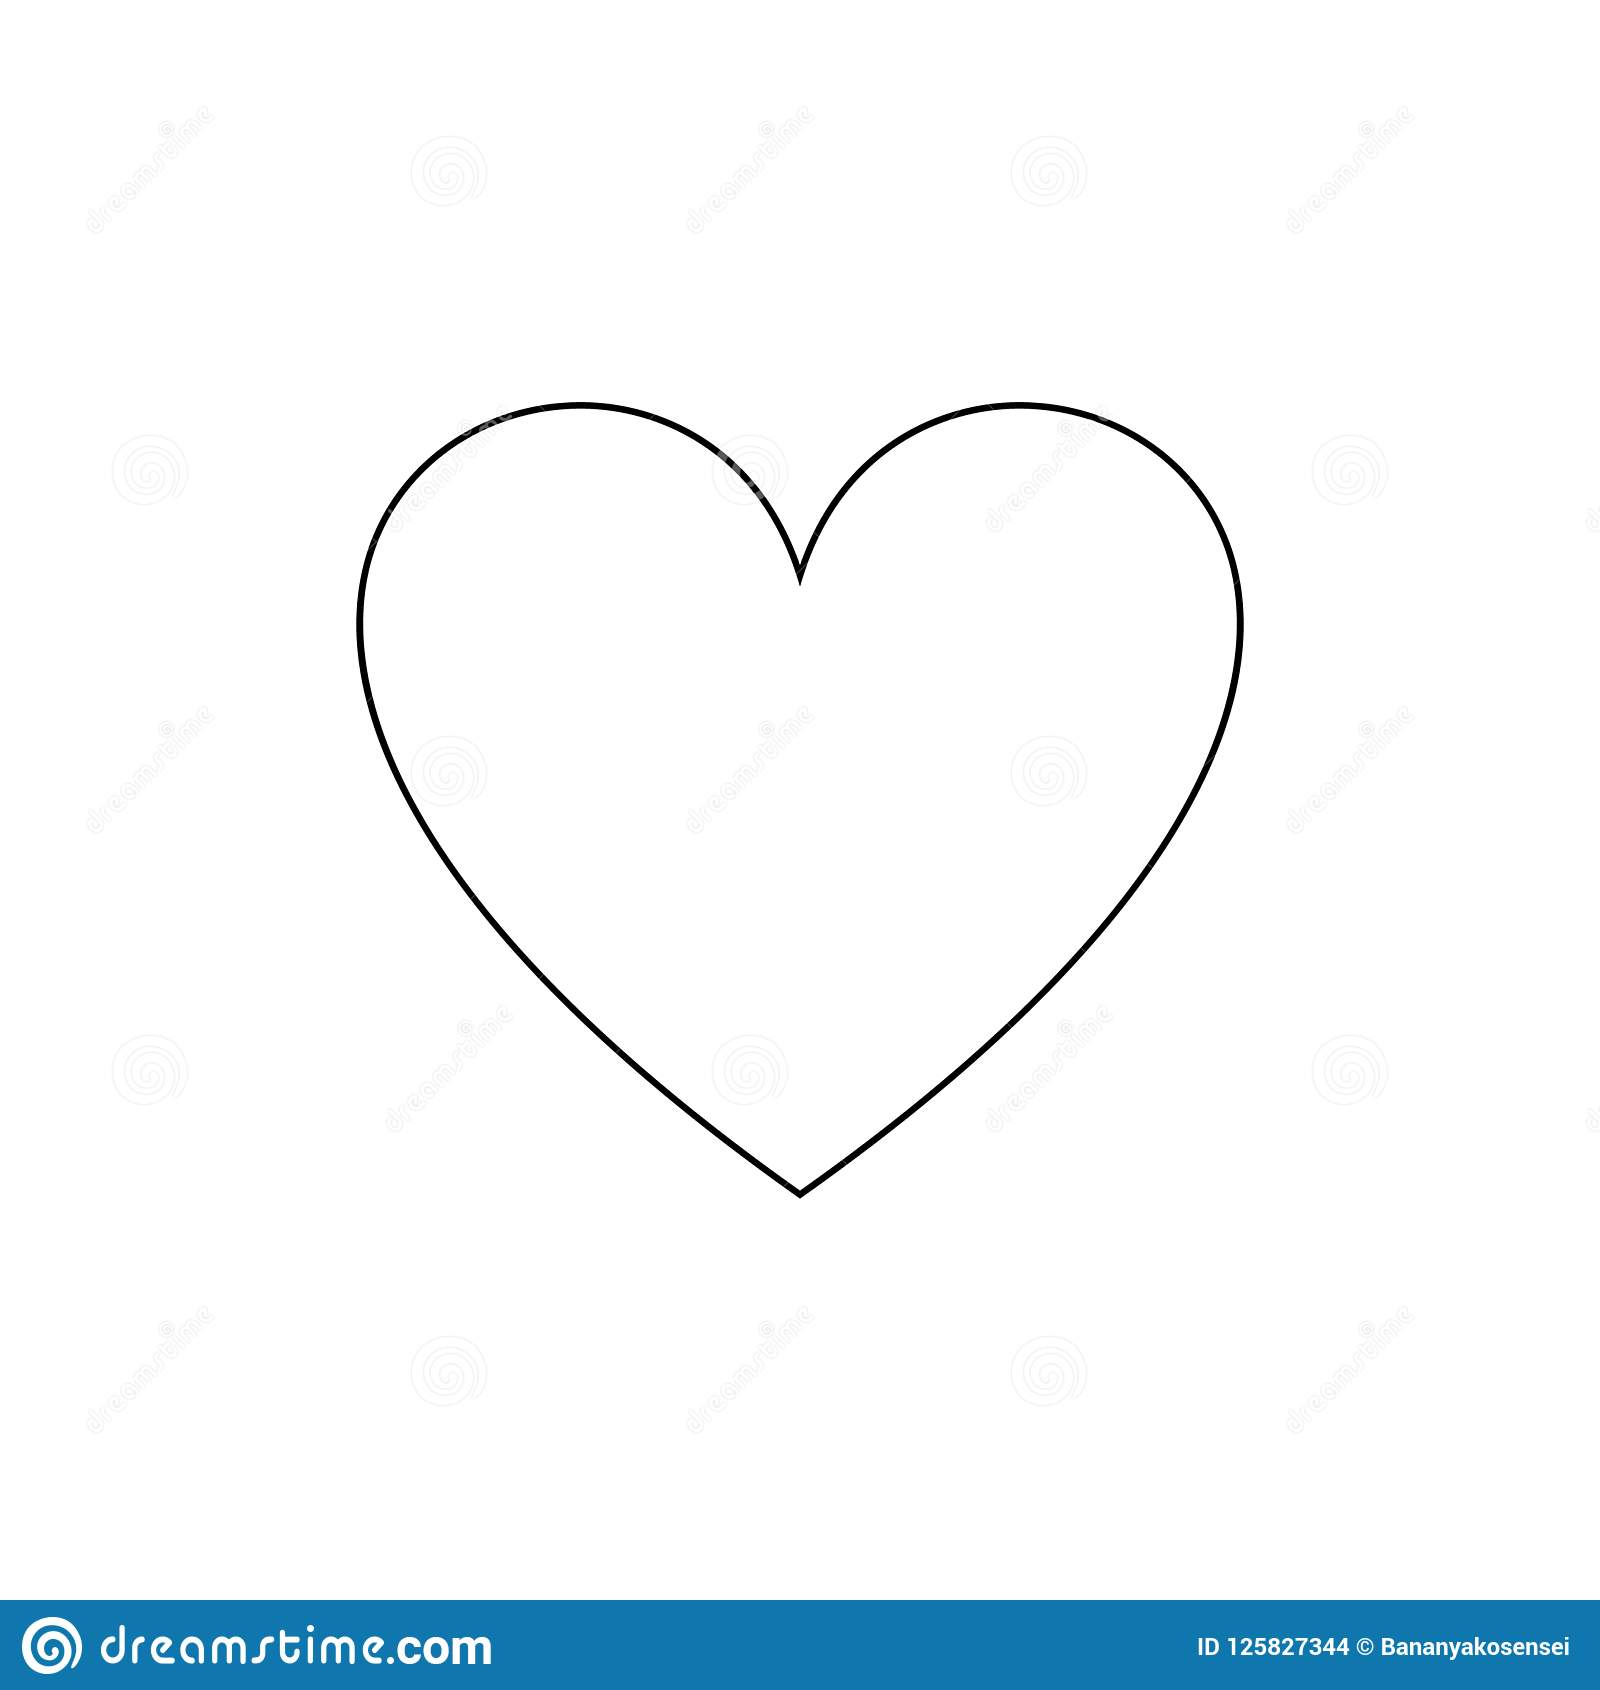 Vector Outline Heart Icon Simple Love Symbol Black Line Isolated